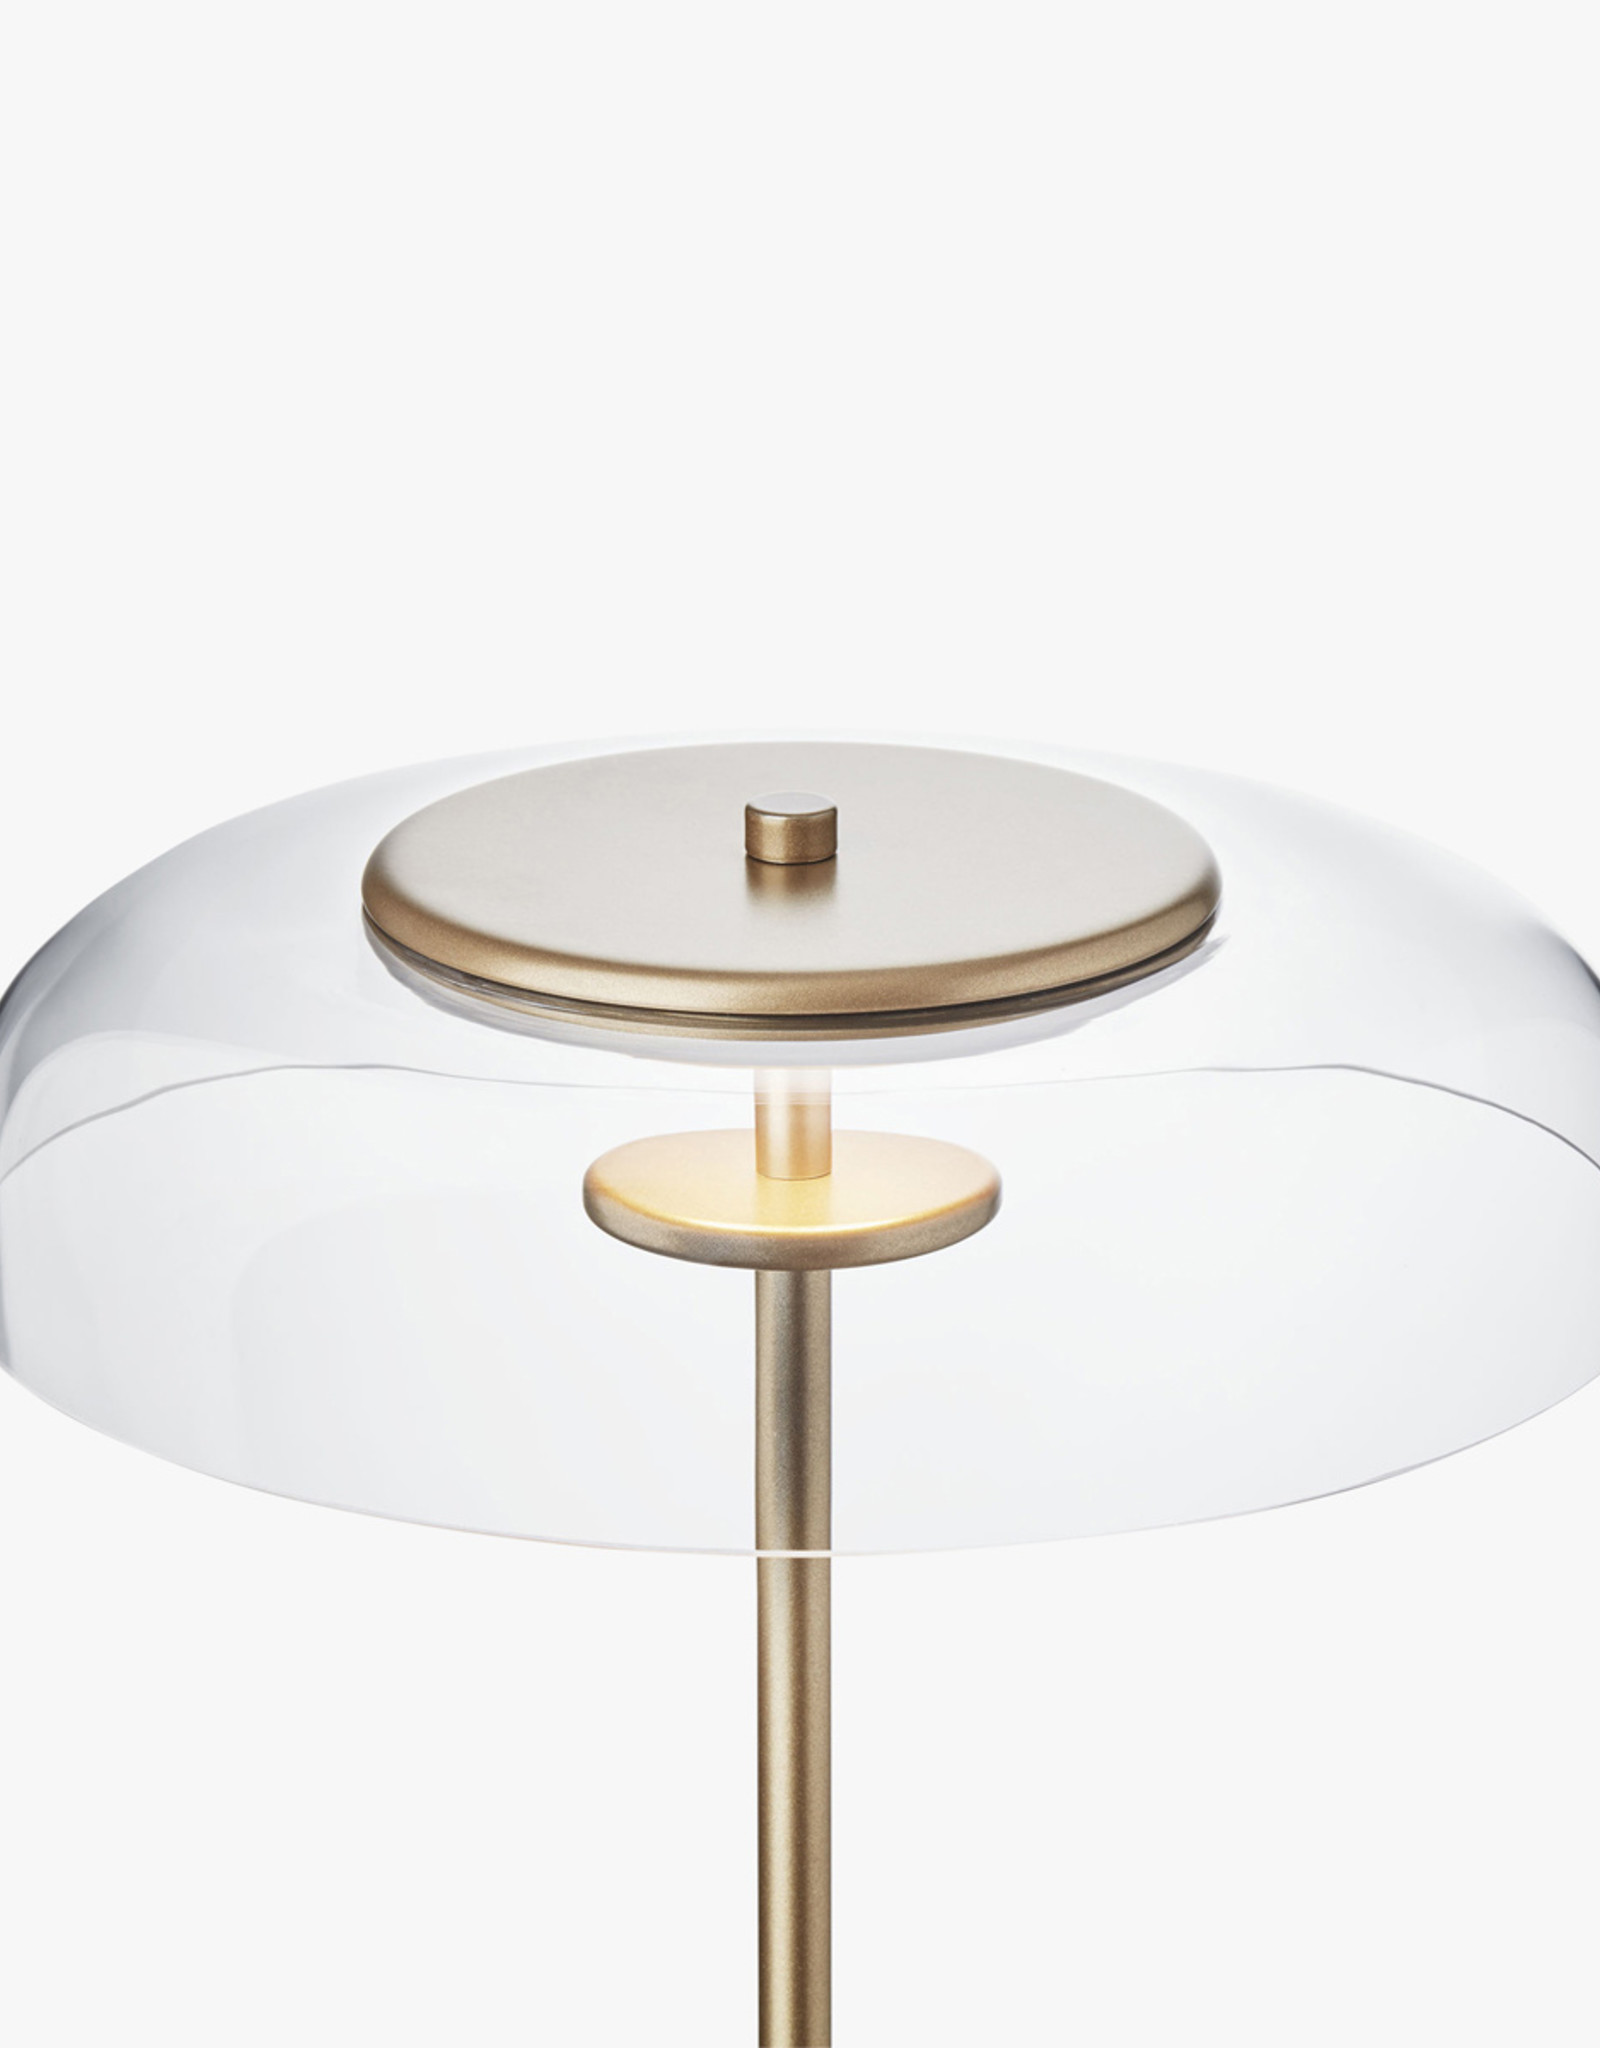 Nuura Blossi floor light by Sofie Refer | Nordic gold/optic clear